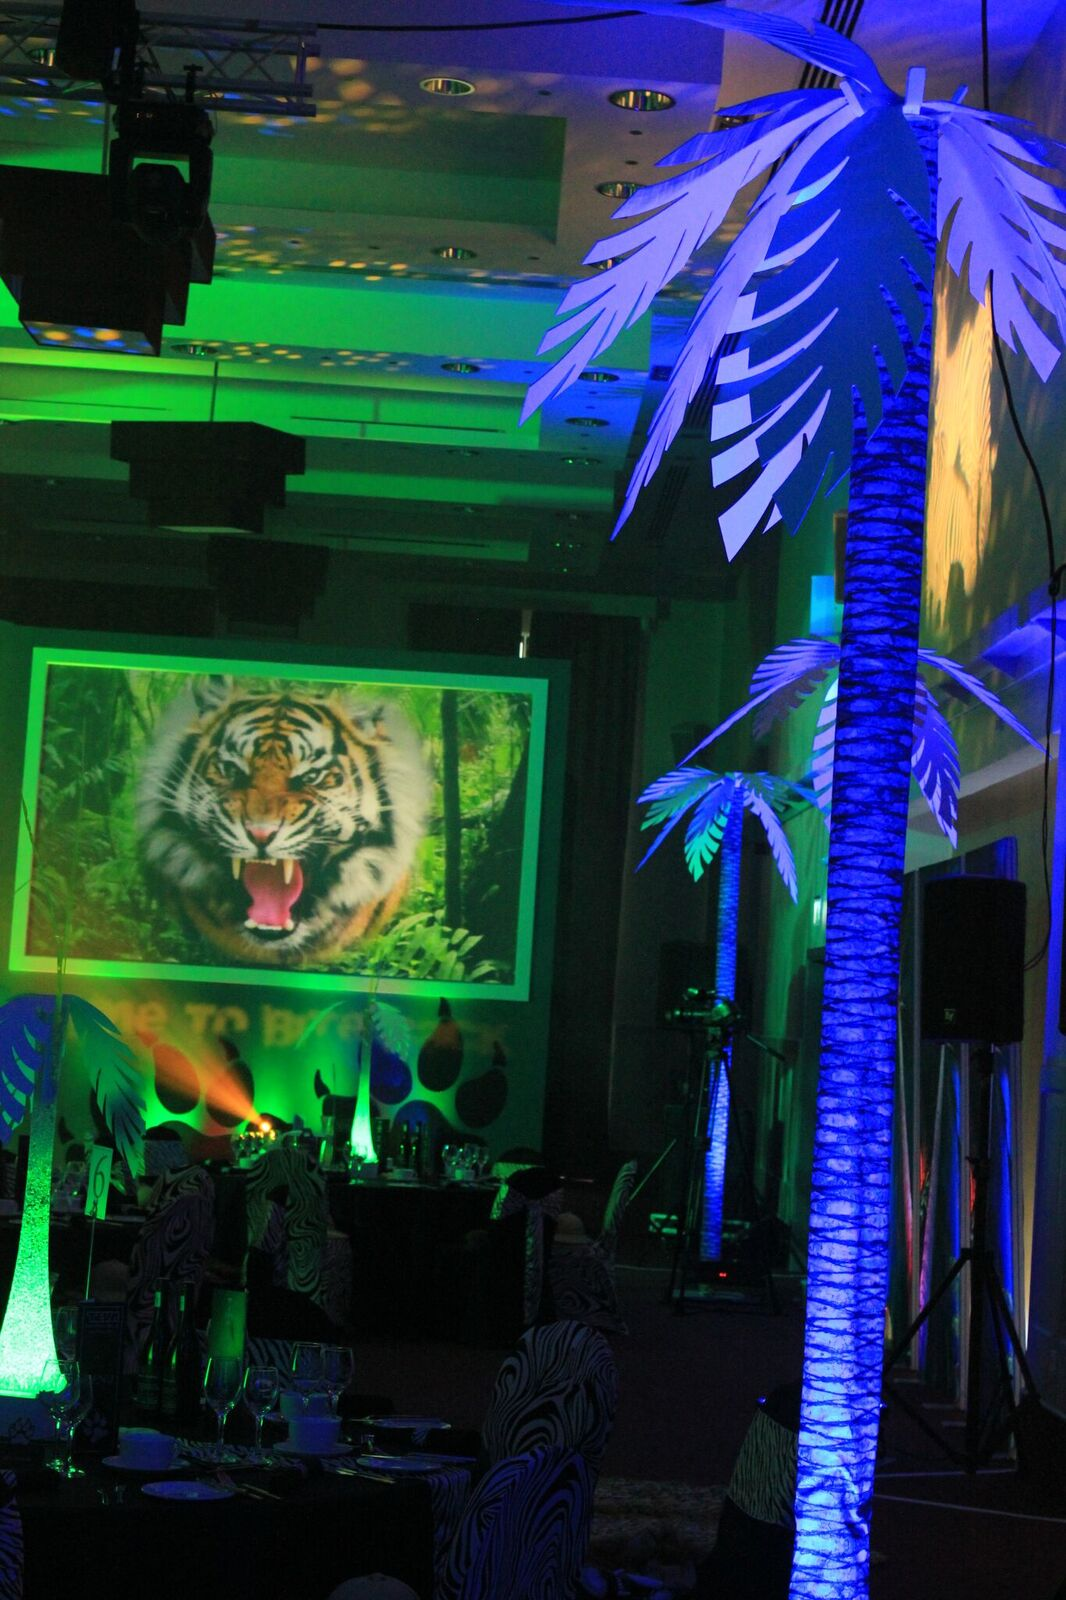 Pine trees and Jungle themed backdrops